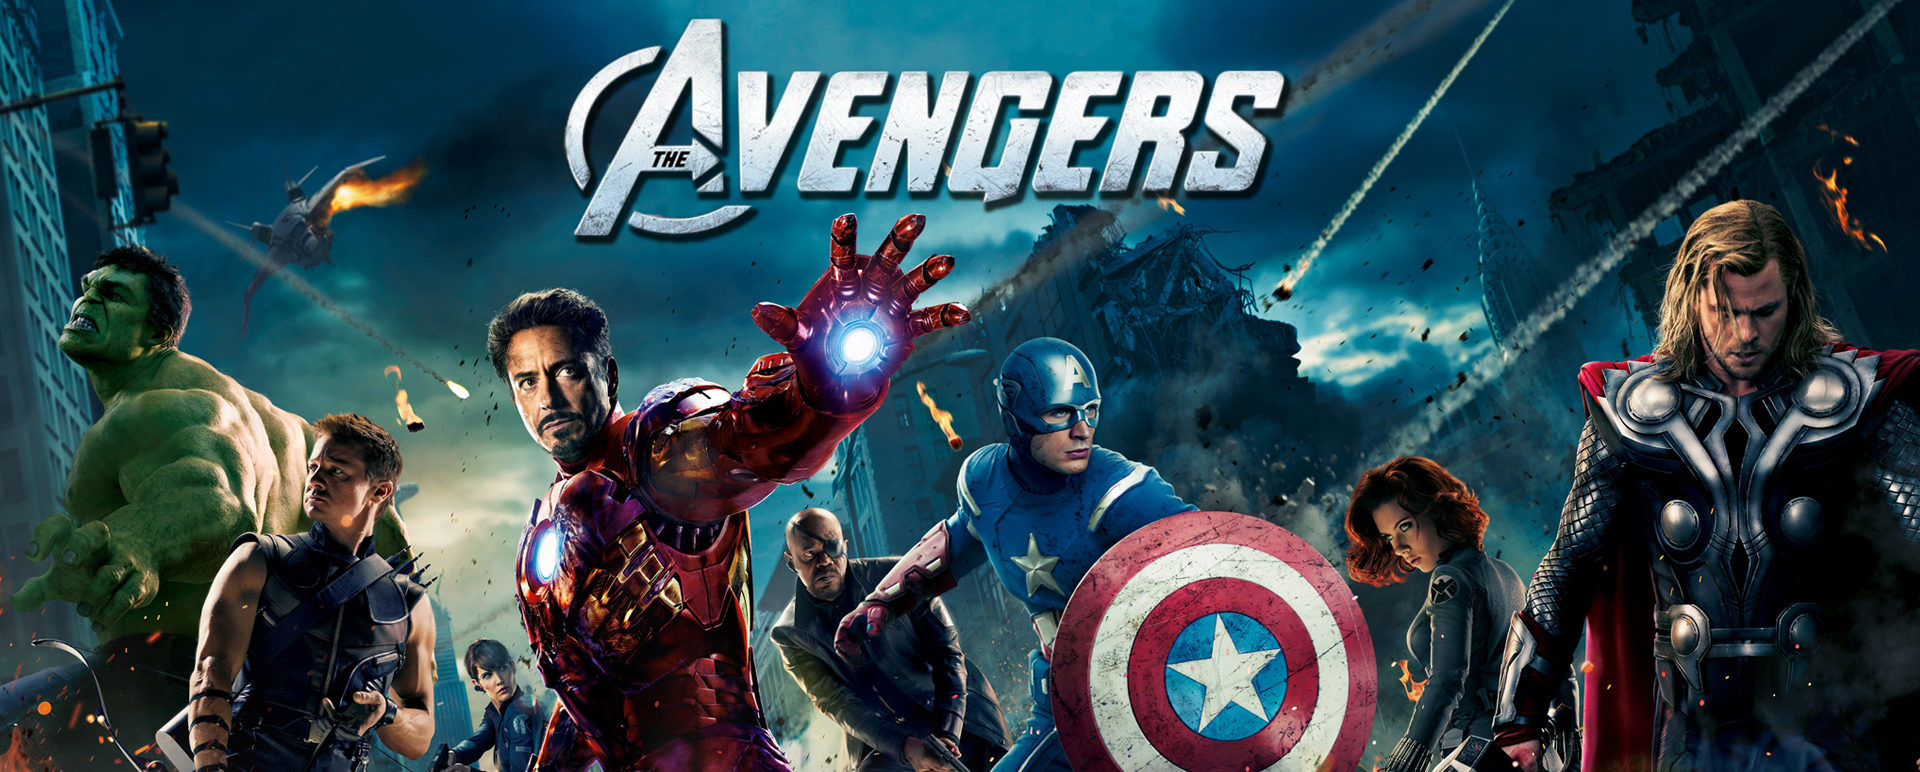 'The Avengers' Review – The Gang's All Here, Now What?